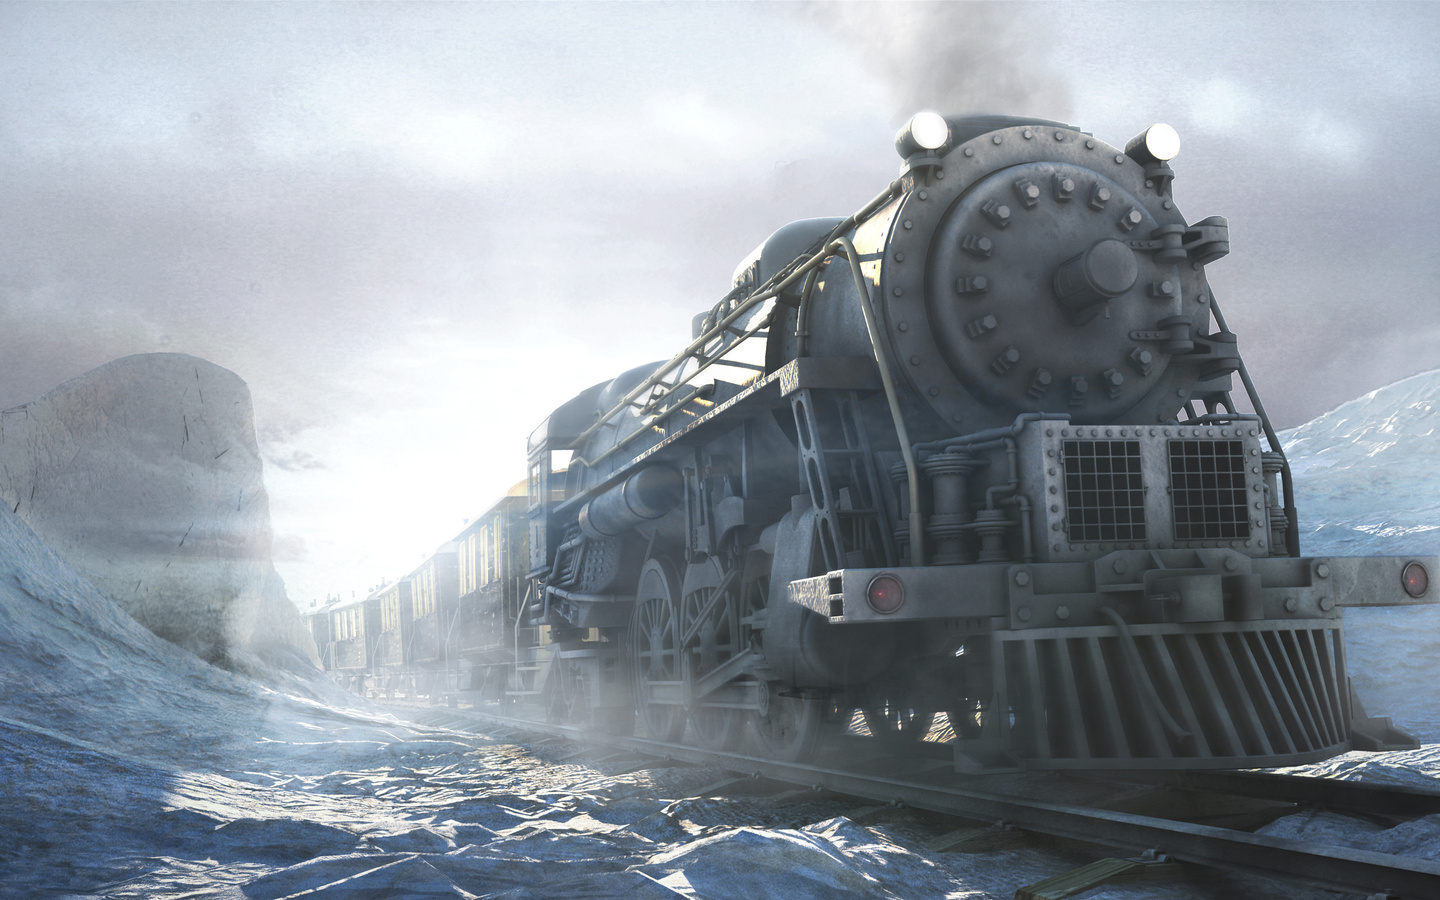 the night train at deoli The night train at deoli 'the night train at deoli' by ruskin bond is a beautiful story of love, heart-ache and yearning it is a story of adolescent infatuation presented with great sensitivity.